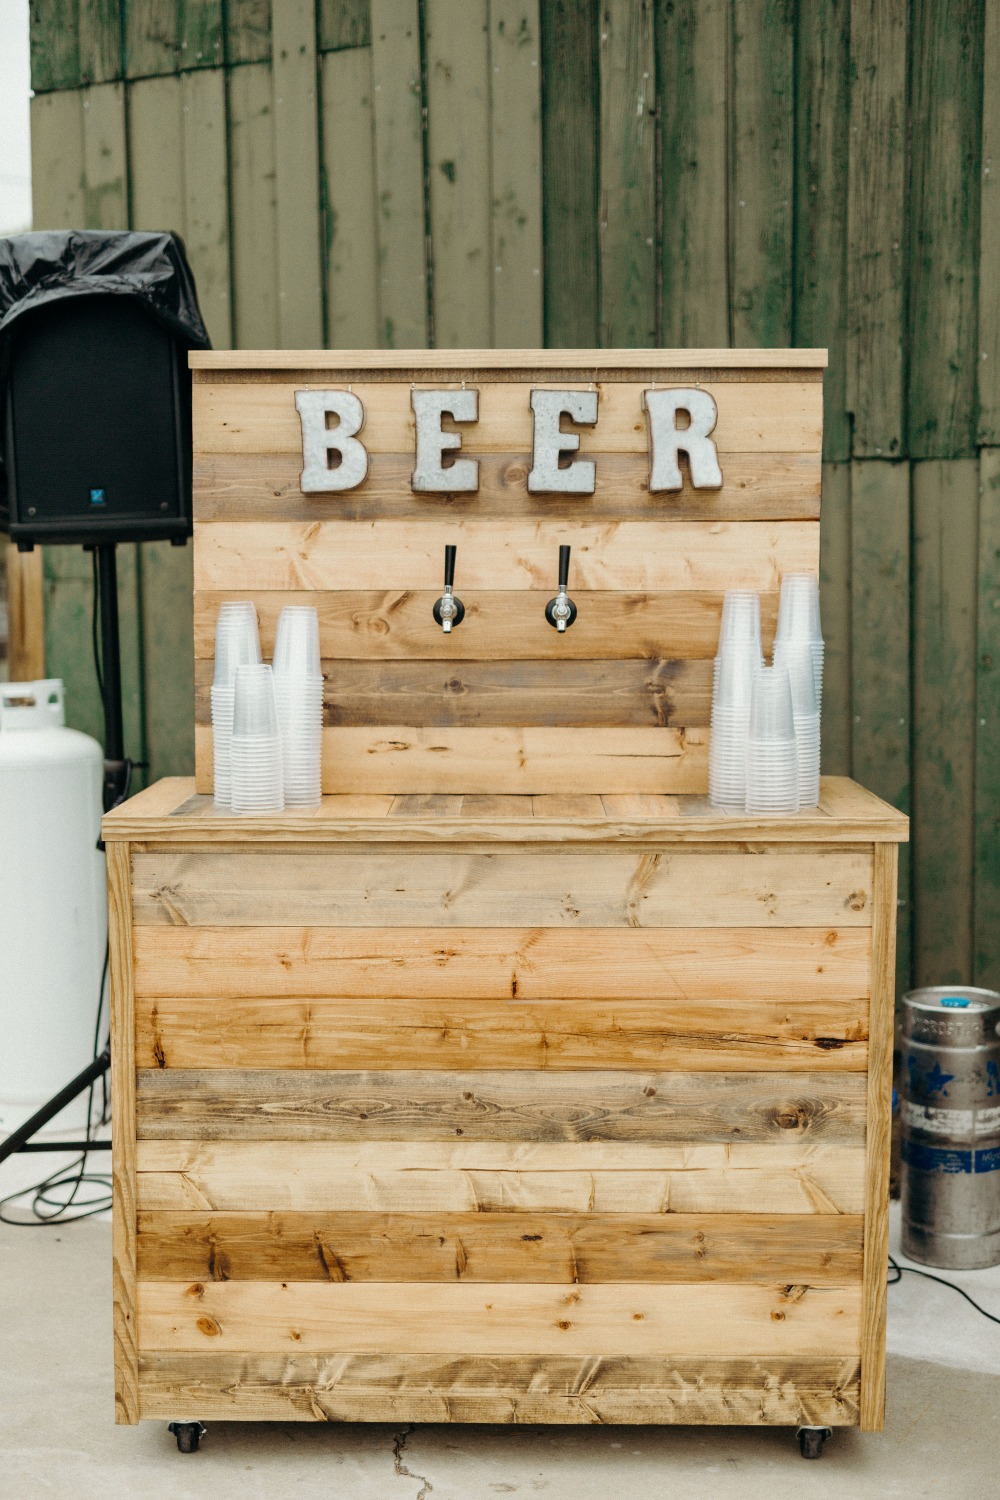 Beer station for a wedding